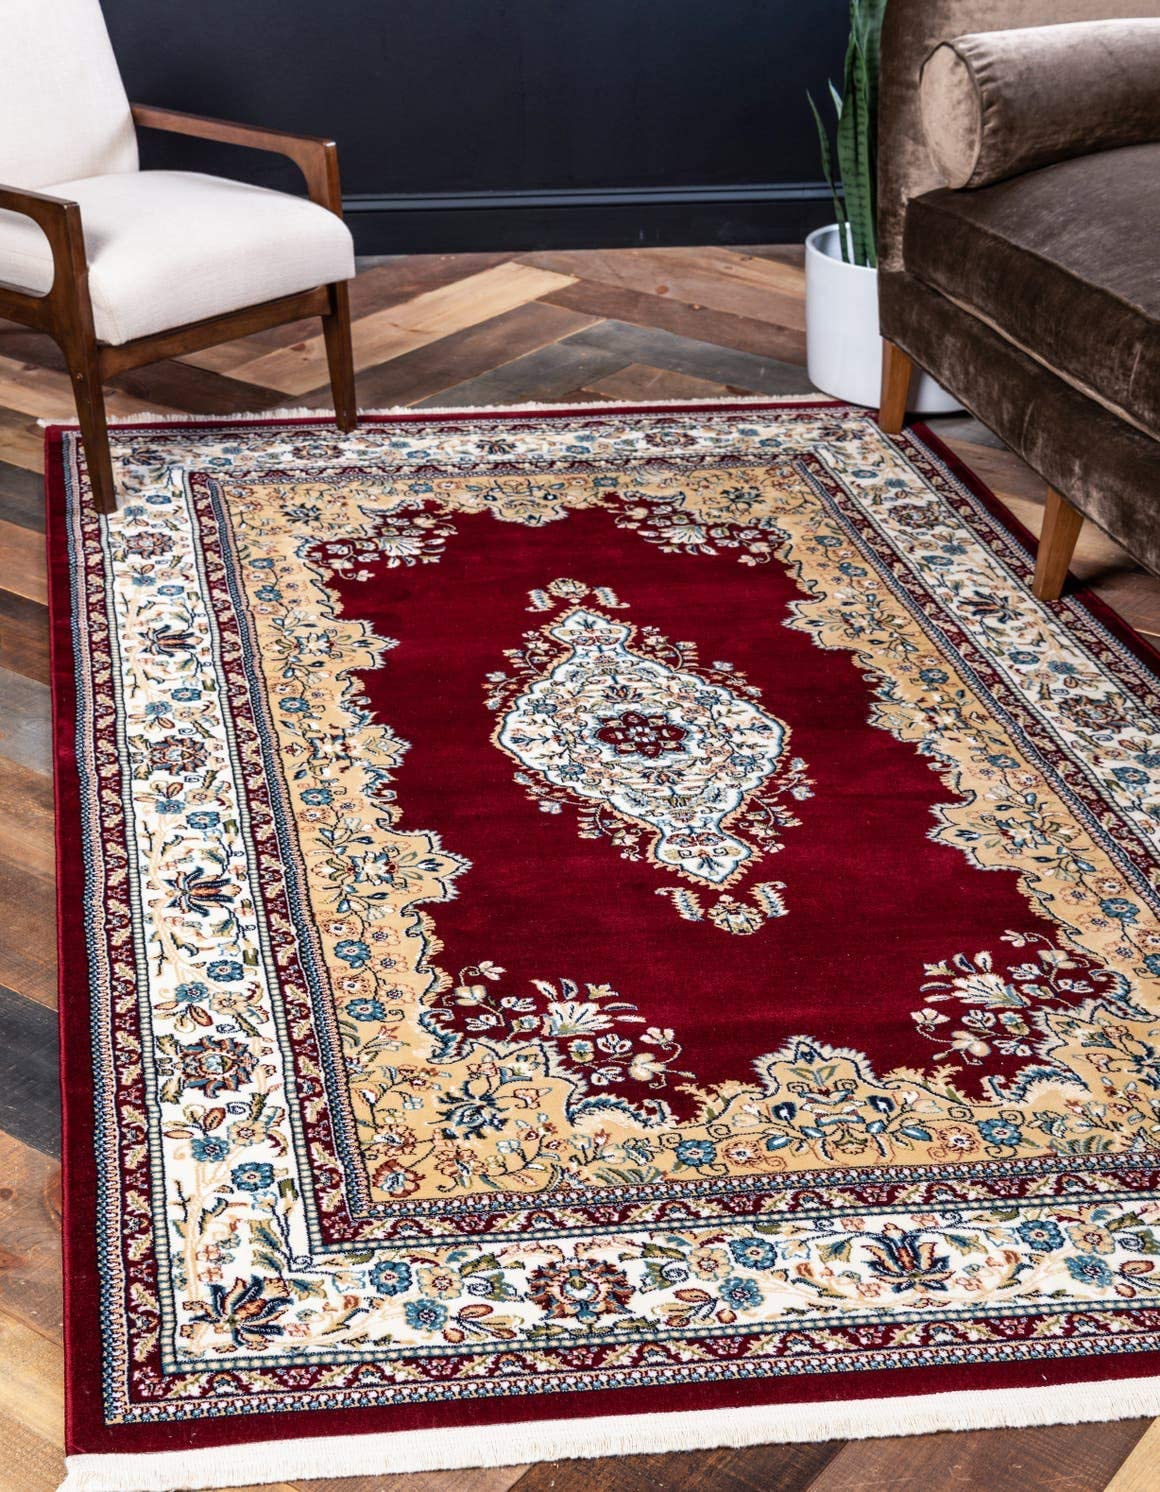 Unique Loom Narenj Collection Classic Traditional Medallion Textured Burgundy Area Rug 8 0 x 10 0